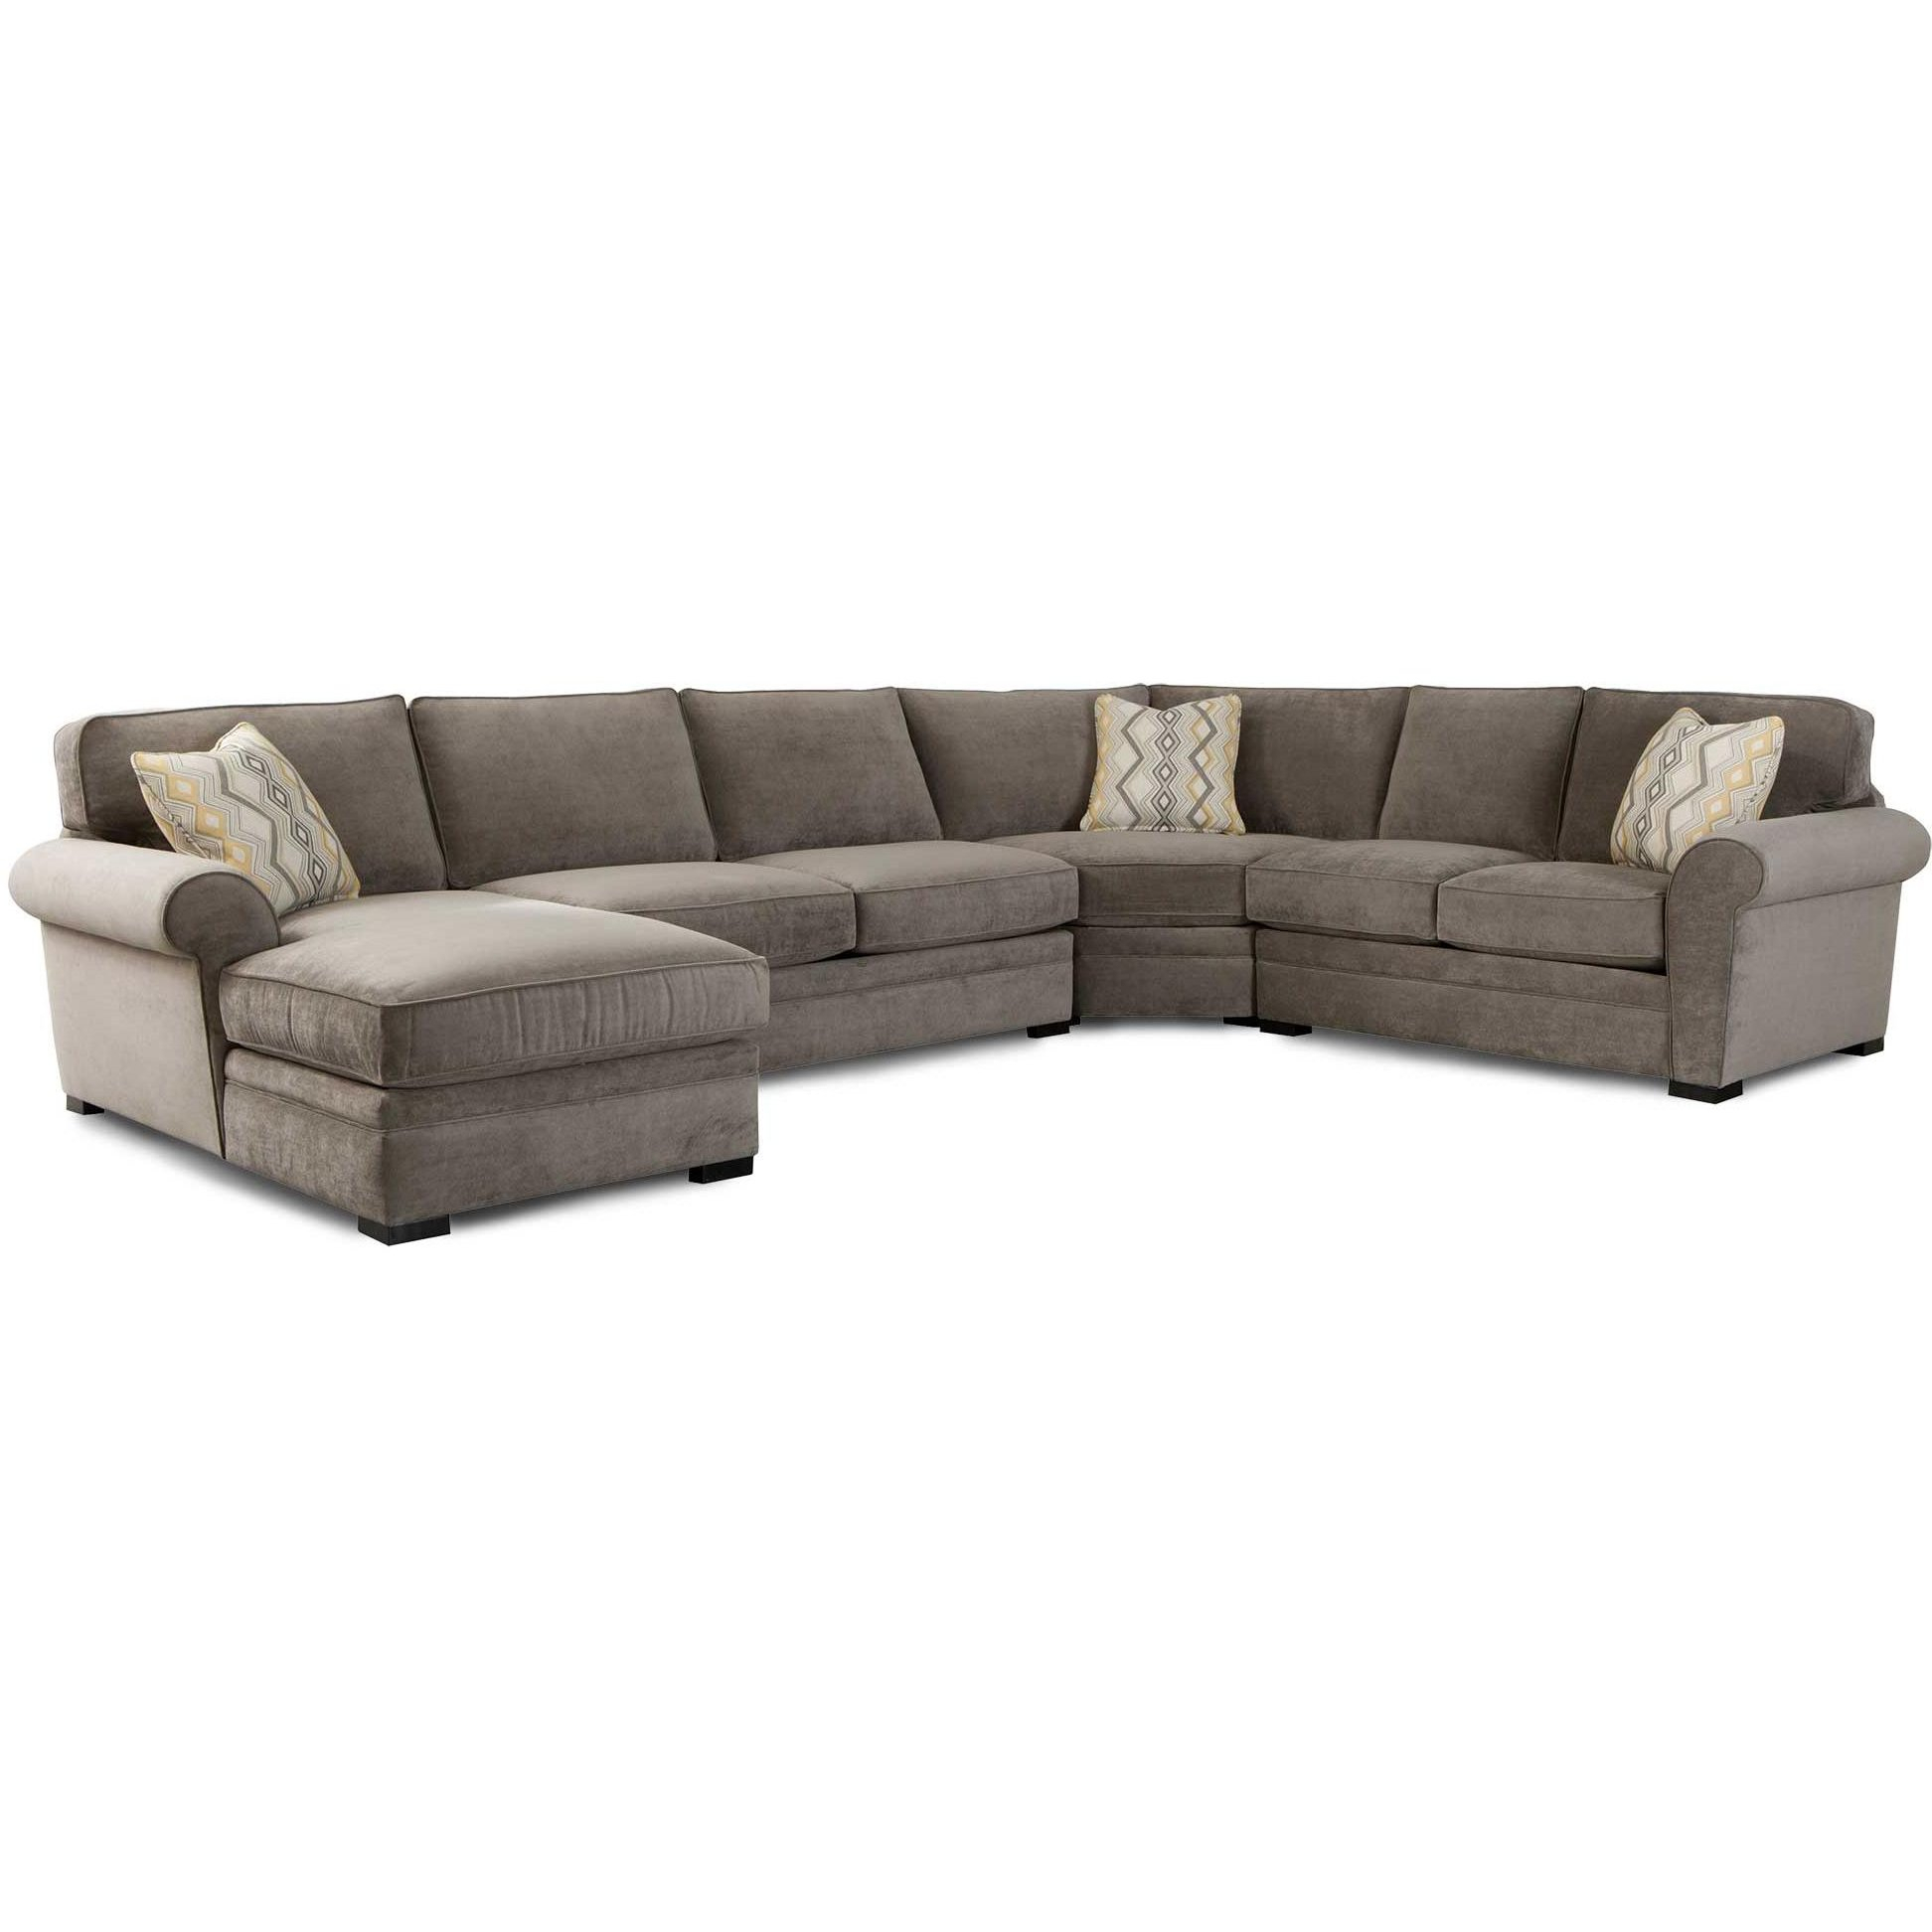 Orion Gray Upholstered 4 Piece Sectional With Regard To Benton 4 Piece Sectionals (View 2 of 15)